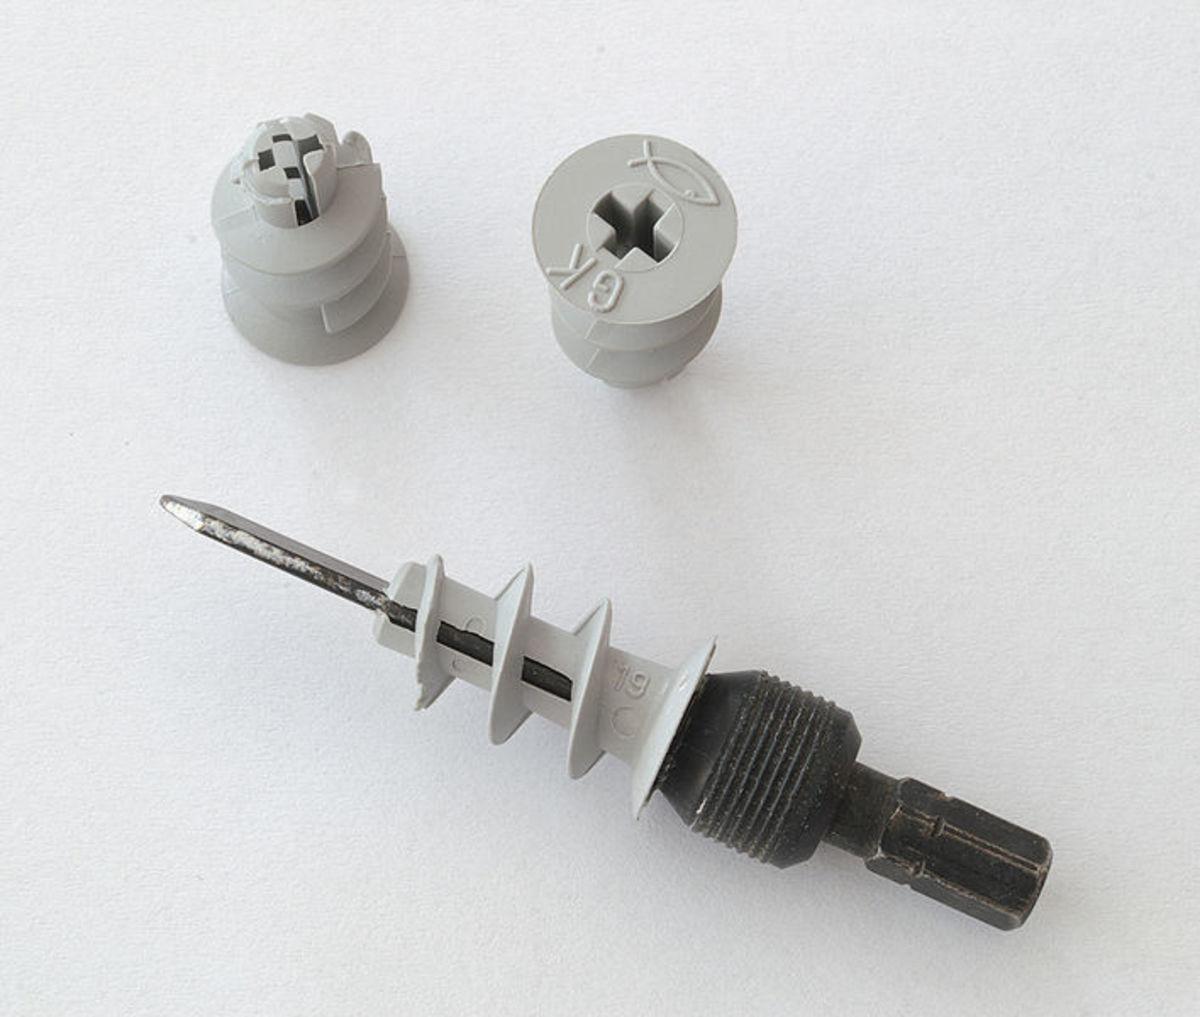 Self-drive drywall anchors and drive bit for cordless drill. Metal versions are also available. The pilot hole size which needs to be drilled in the plasterboard (6mm), is marked on the fixing